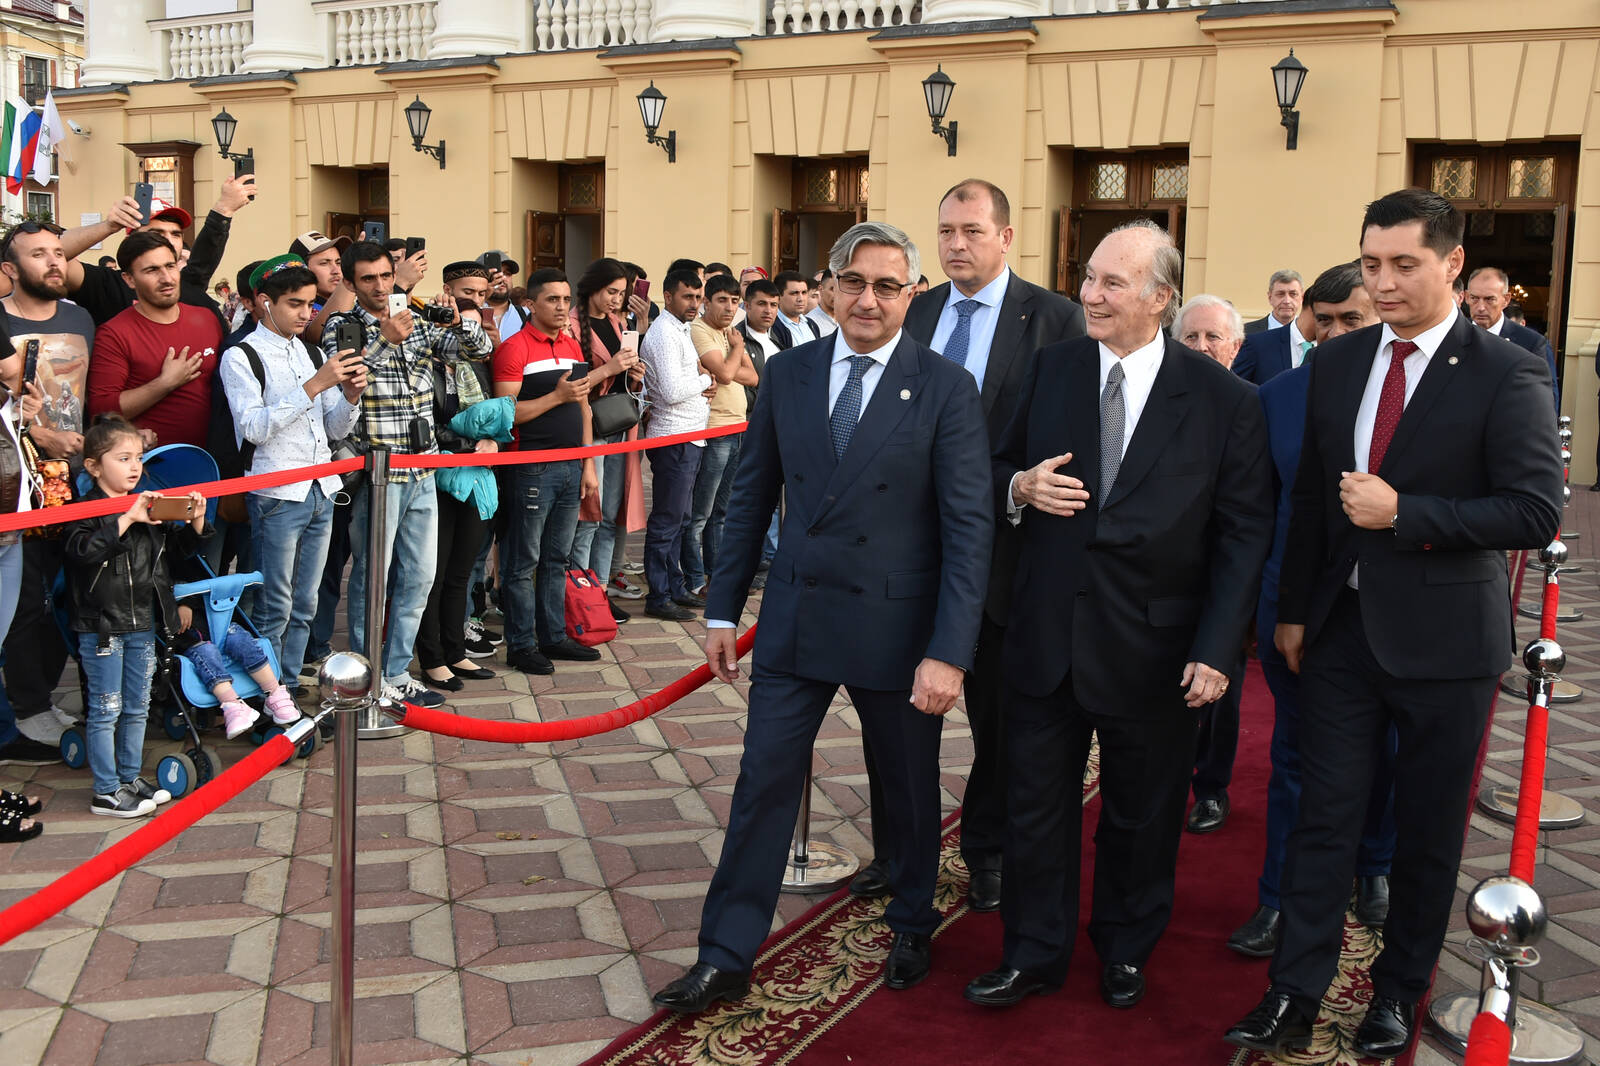 Aga Khan in Kazan for 2019 AKAA Ceremony